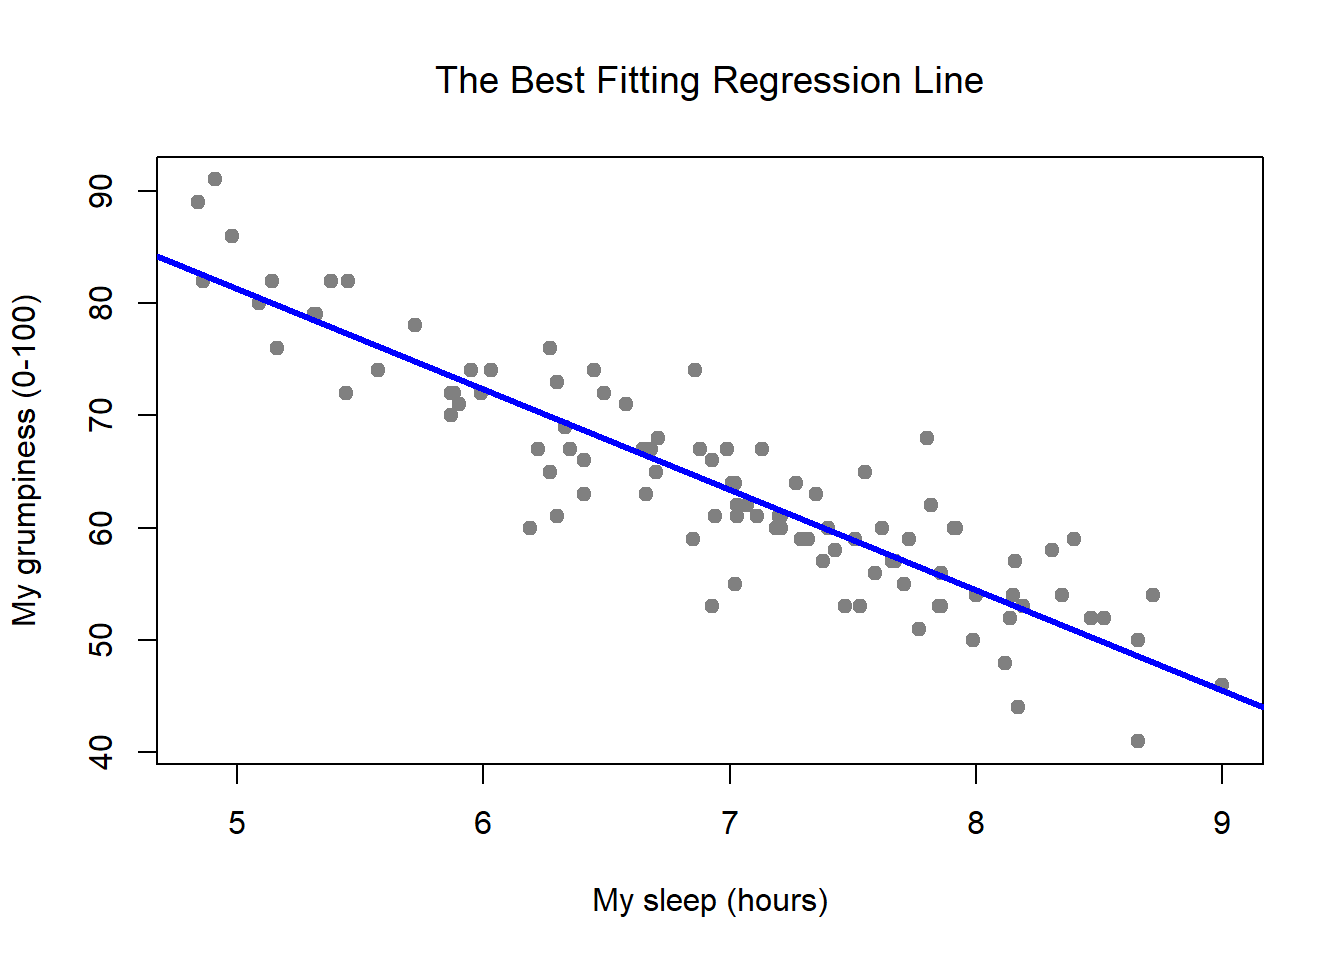 Panel a shows the sleep-grumpiness scatterplot from above with the best fitting regression line drawn over the top. Not surprisingly, the line goes through the middle of the data.